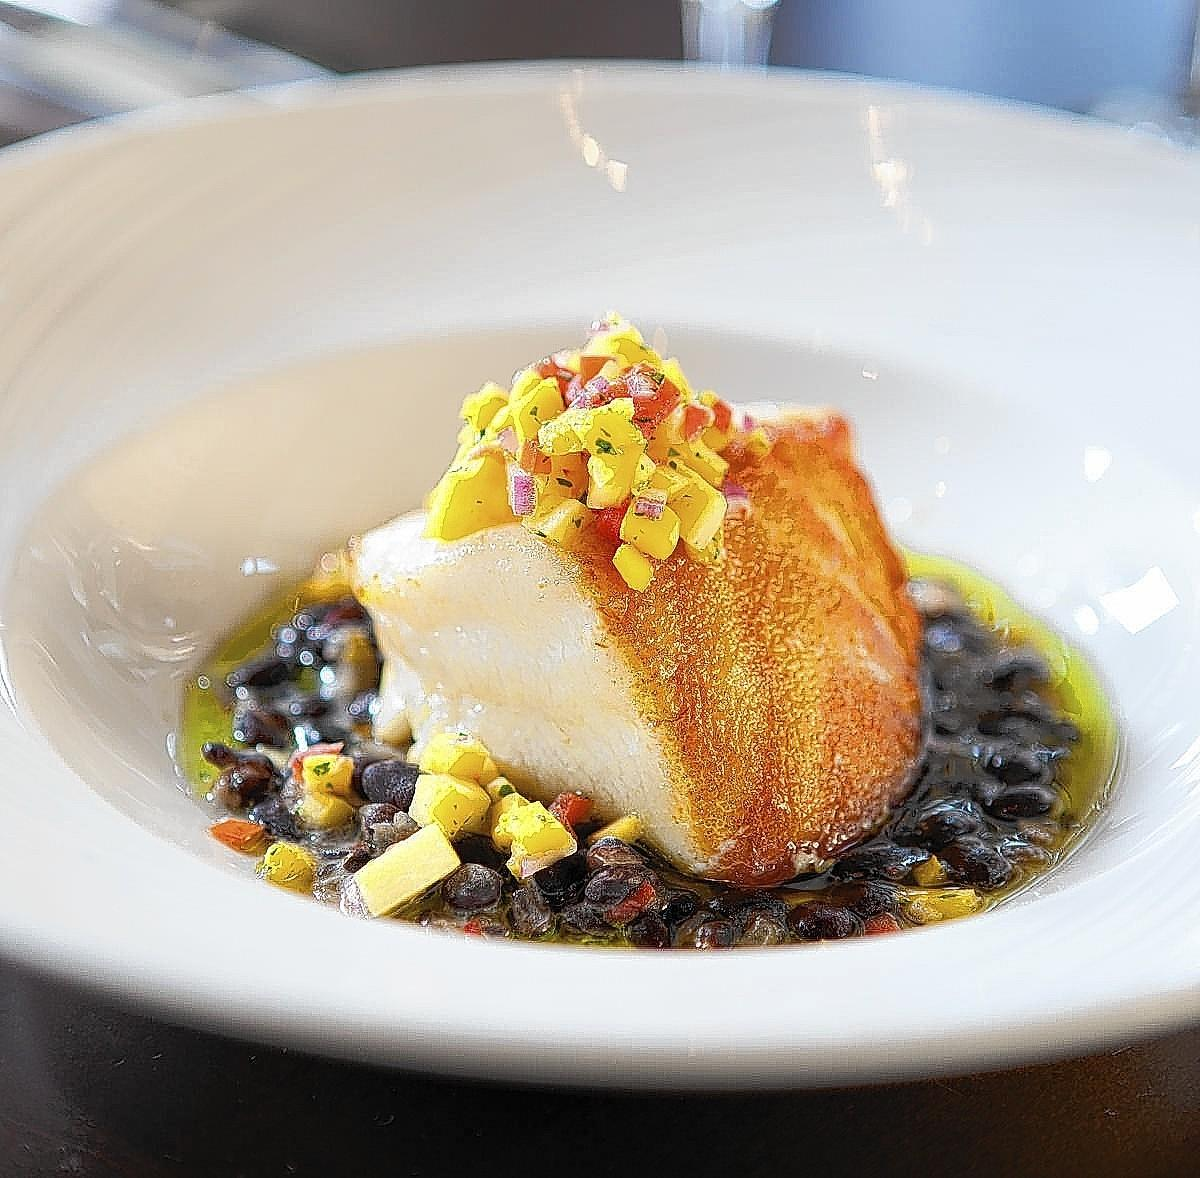 The fresh catch changes daily at deep blu seafood grille. This sea bass is served on a saute of black beans topped with mango relish.